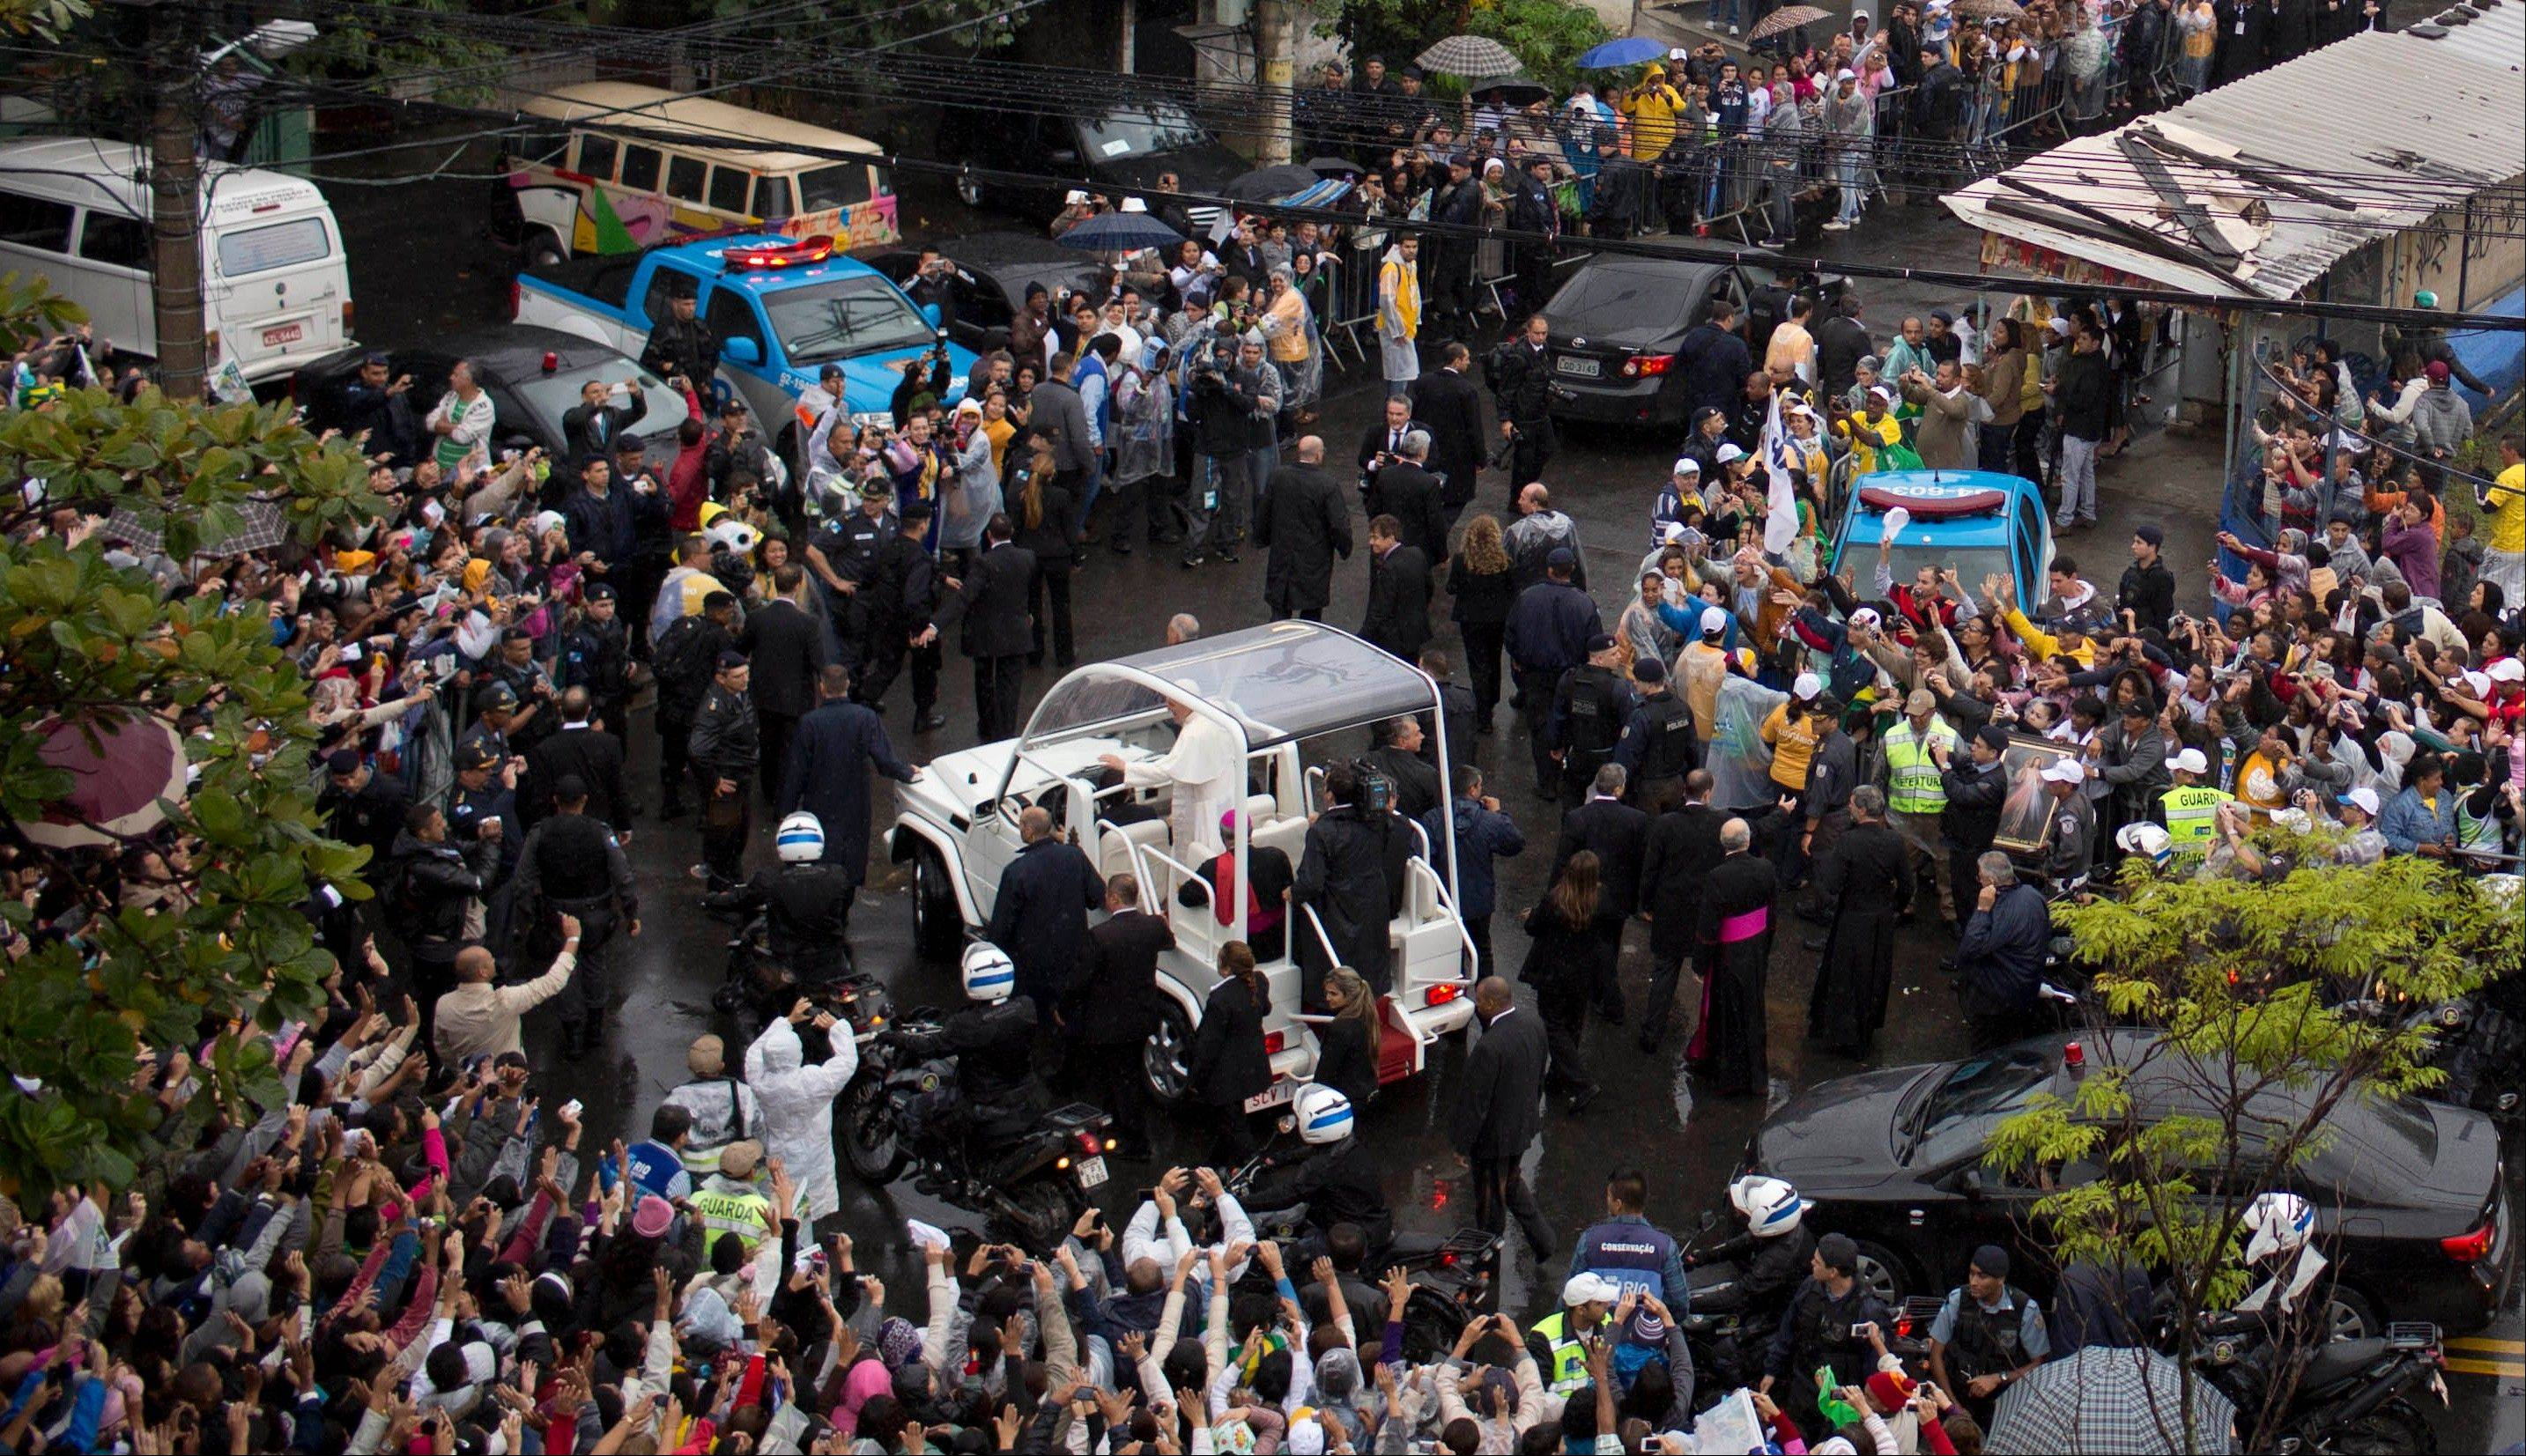 People line the street to greet Pope Francis as he arrives in his popemobile in the Varginha slum, part of the Manguinhos slum complex in Rio de Janeiro, Brazil, Thursday.